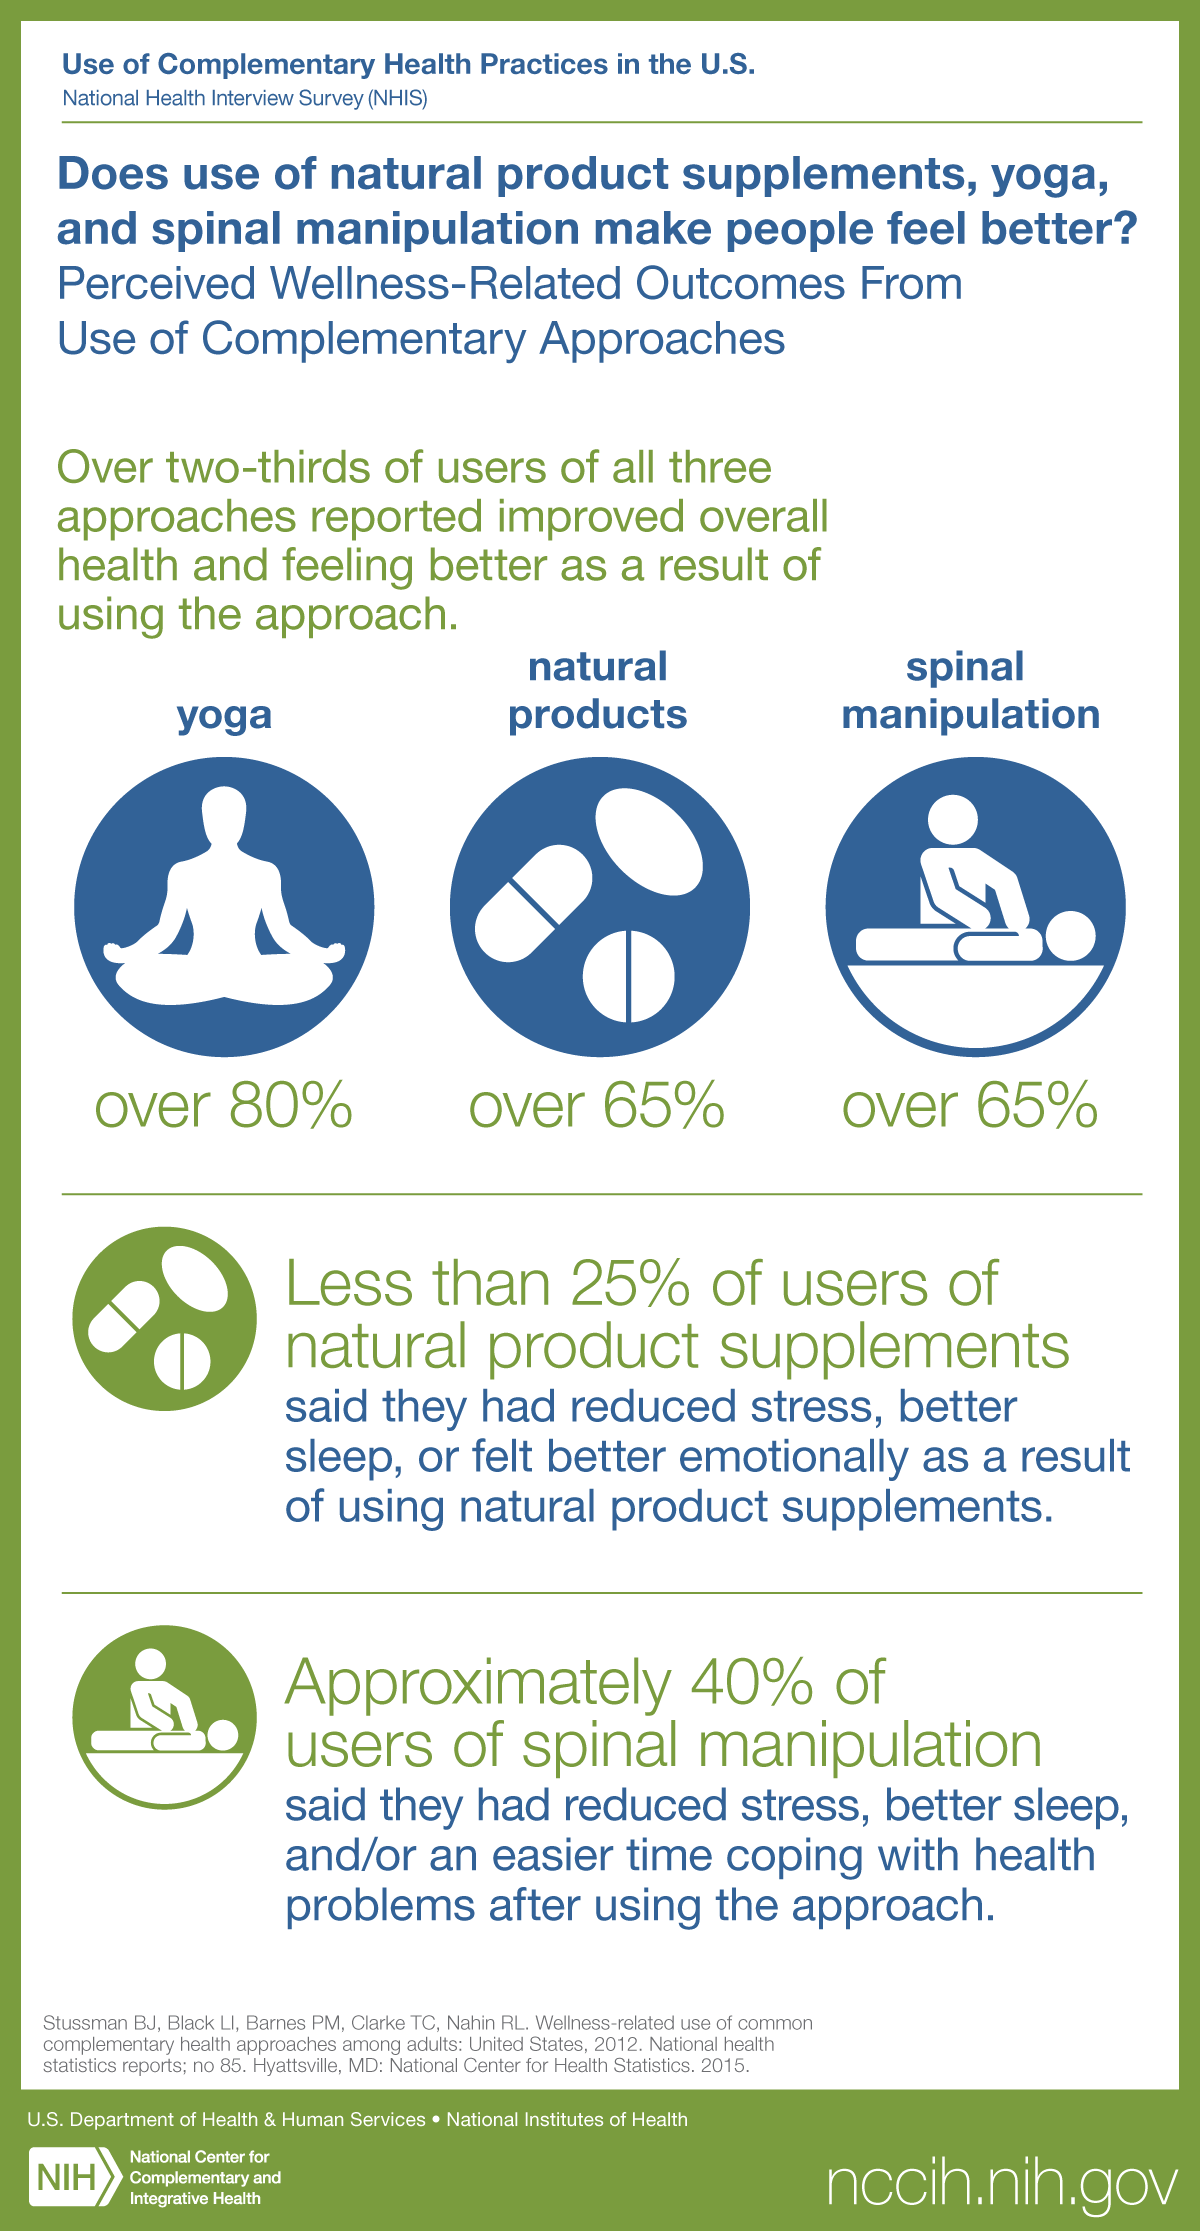 Does use of natural product supplements, yoga, and spinal manipulation make people feel better?: Perceived Wellness-Related Outcomes From Use of Complementary Approaches